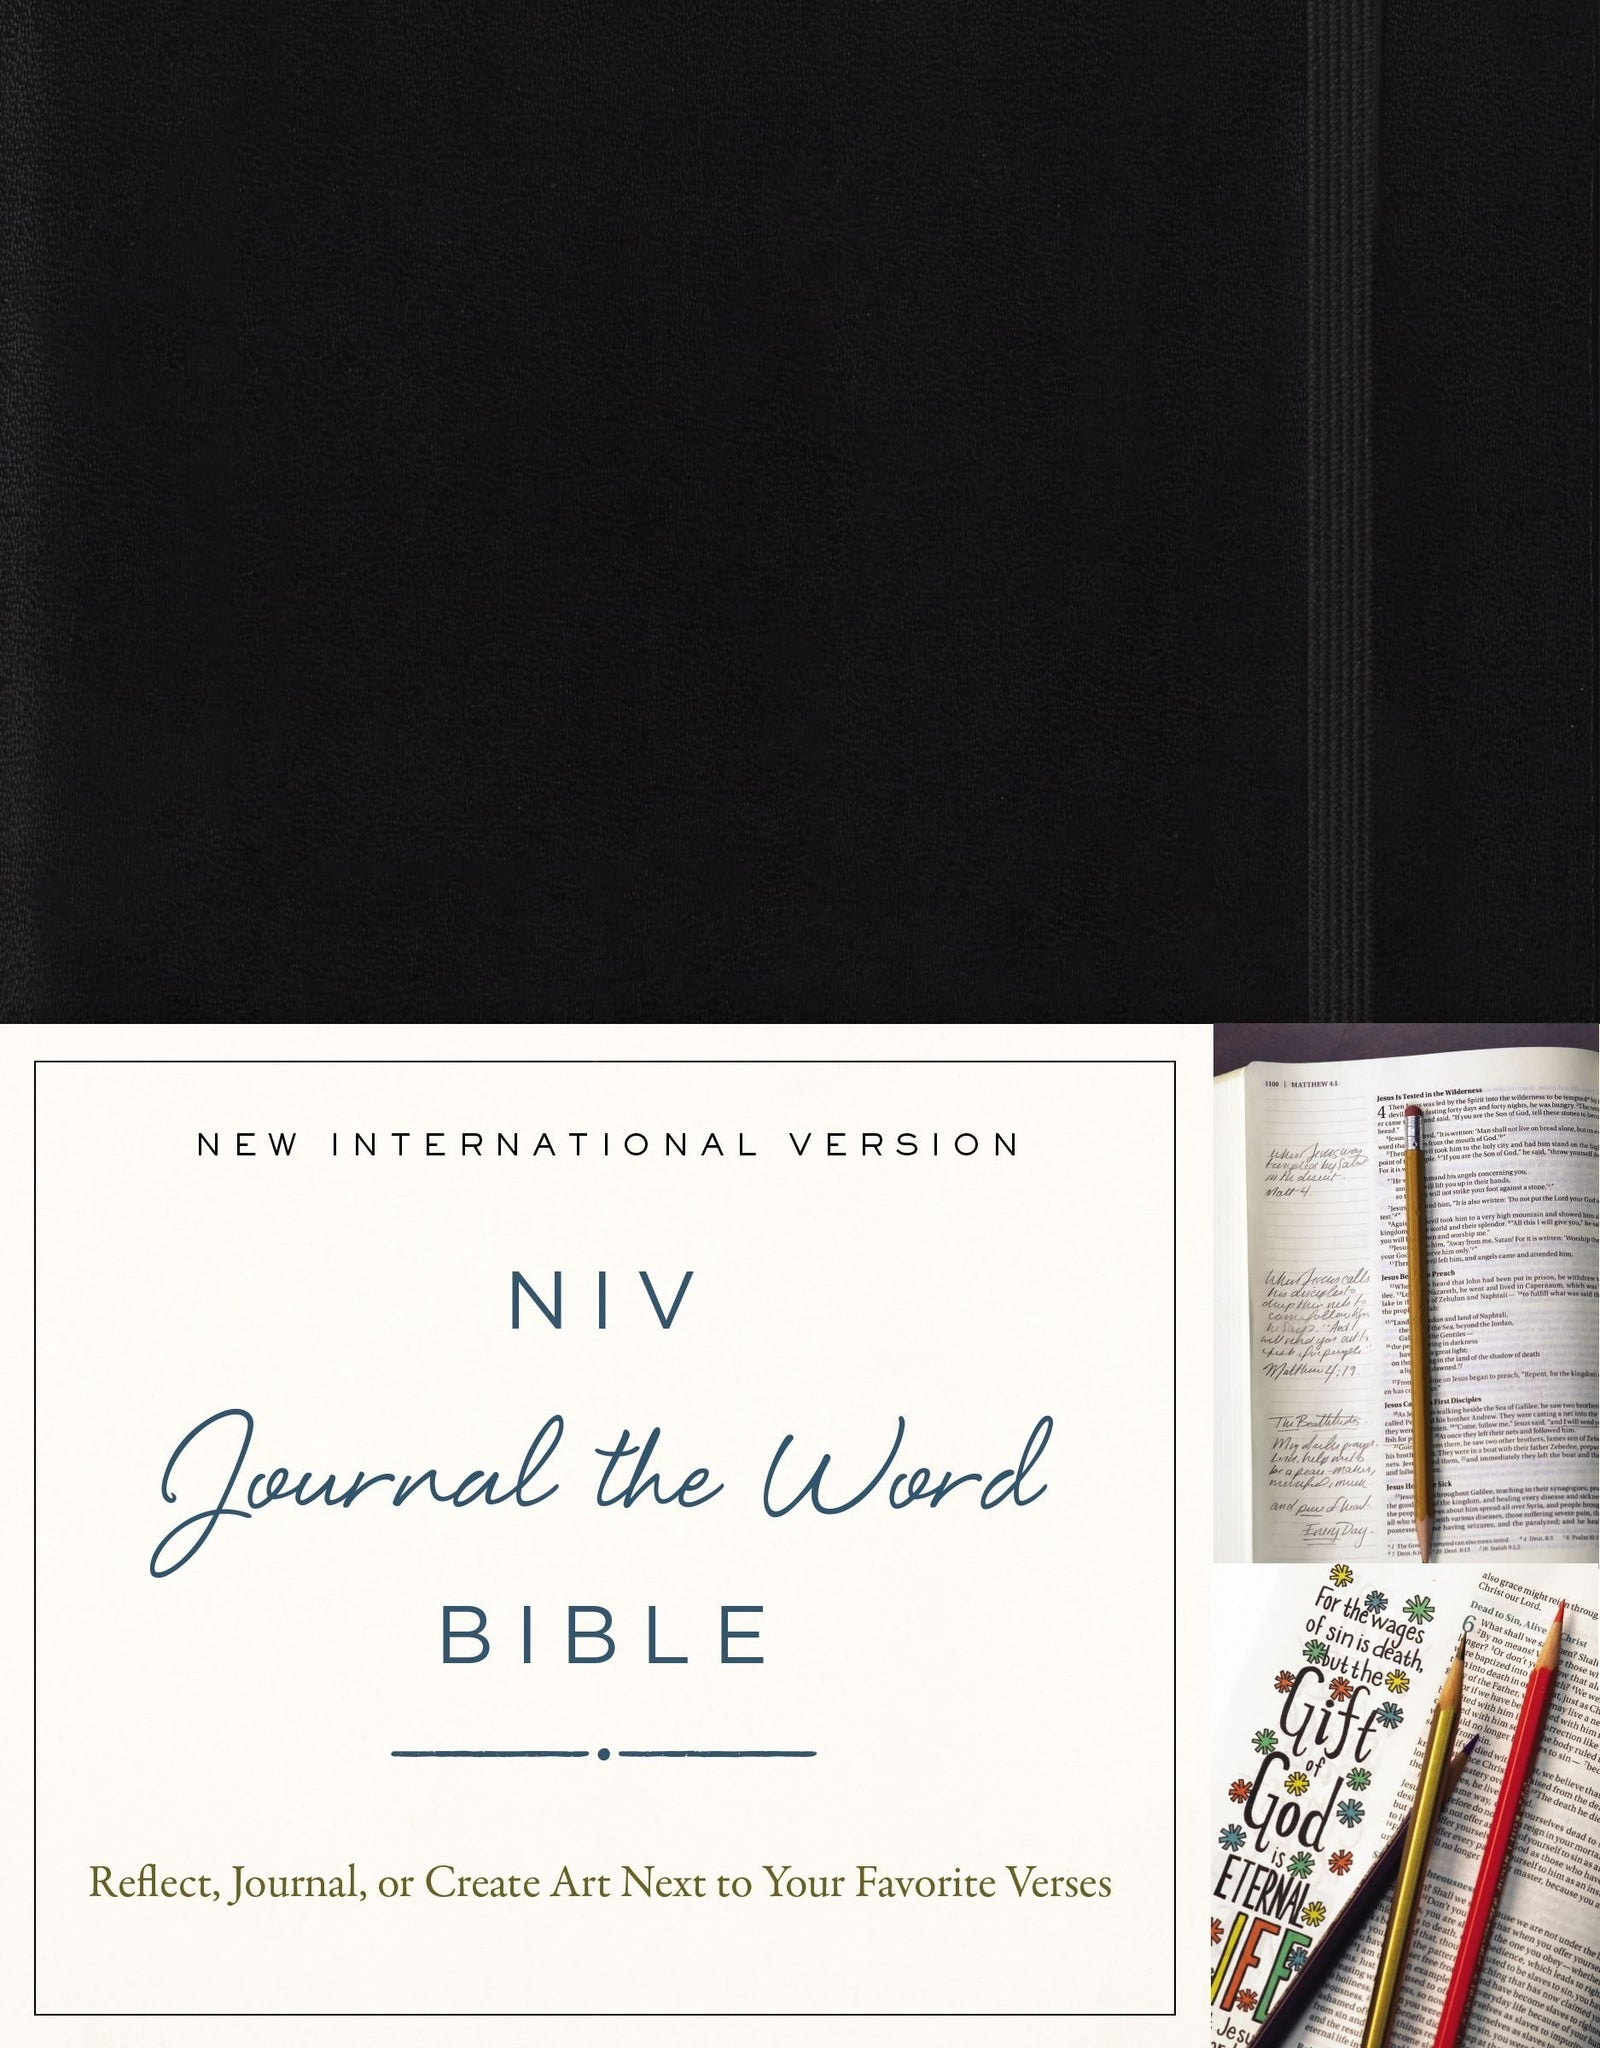 Bible - NKJV Journal the Word